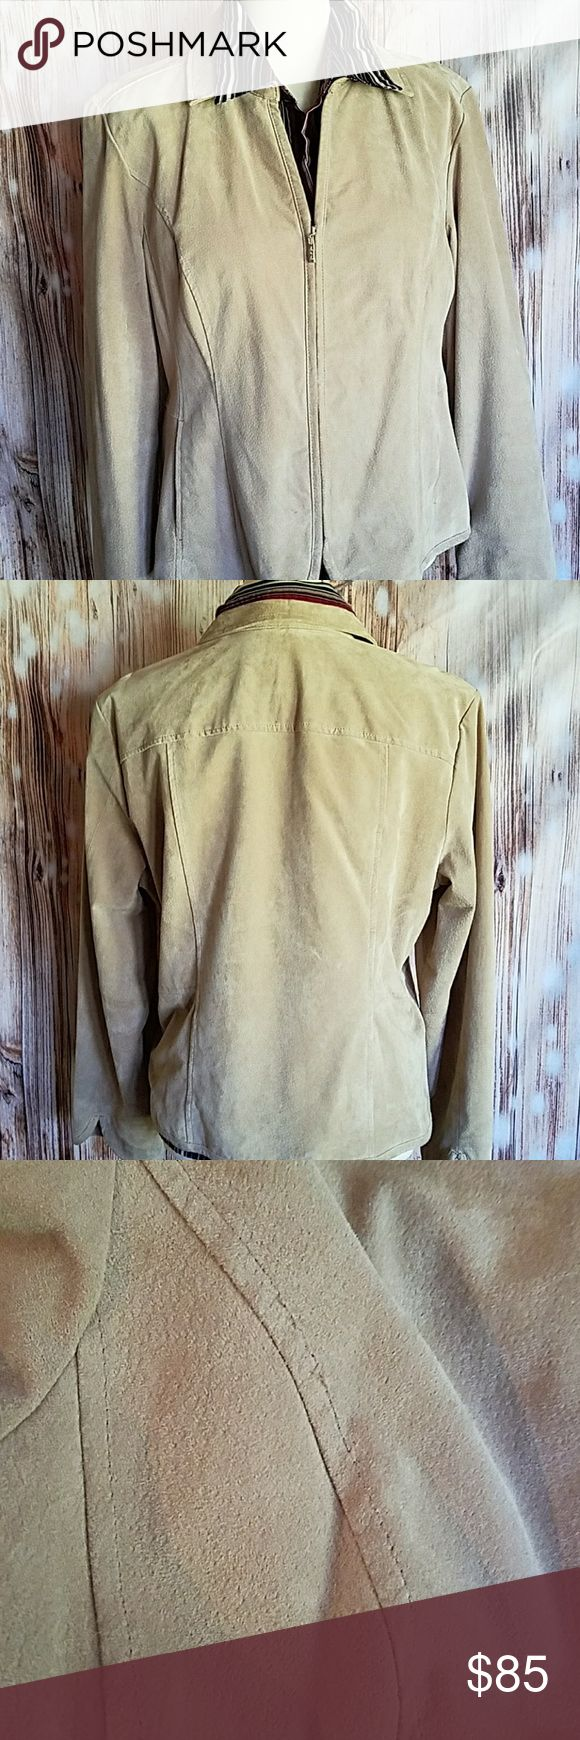 AMI  Suede Leather Jacket Fawn color leather (suede) jacket. Beautiful lines and soft leather, fully lined. Very good condition just needs to be professionally cleaned and 3 small stitches tightened down. Zipper works perfect. Definitely worth the price, I would keep it but it does not fit me anymore. AMI Jackets & Coats